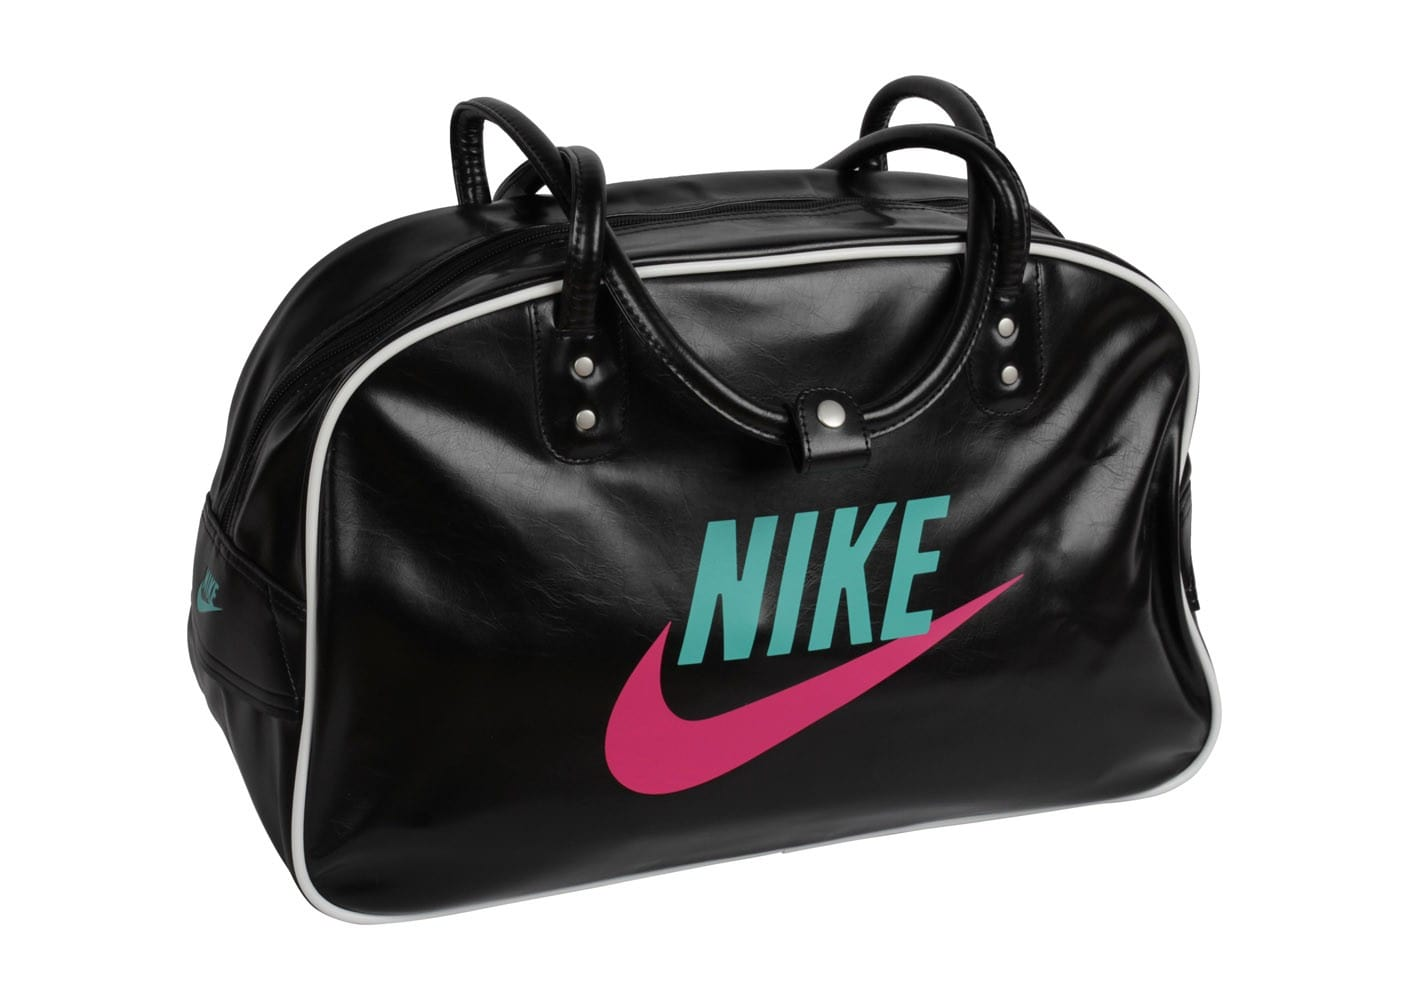 nike sac heritage shoulder noir accessoires chausport. Black Bedroom Furniture Sets. Home Design Ideas